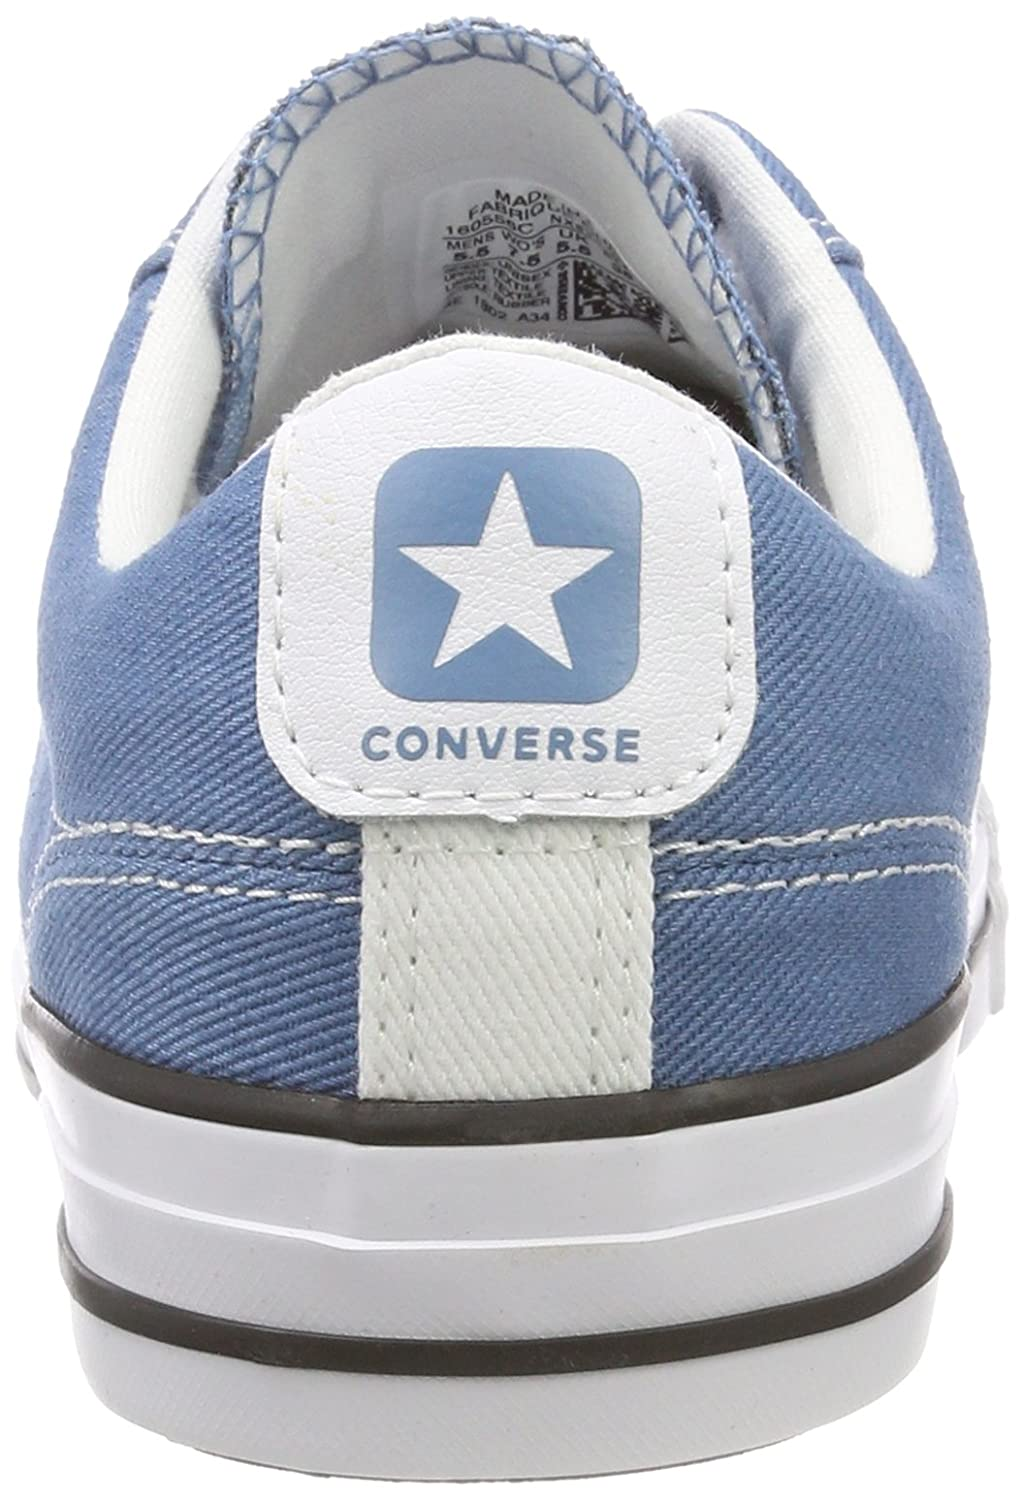 Converse Unisex Adults  Star Player Ox Aegean Storm White Black Trainers   Amazon.co.uk  Shoes   Bags 77a4b66cf8a